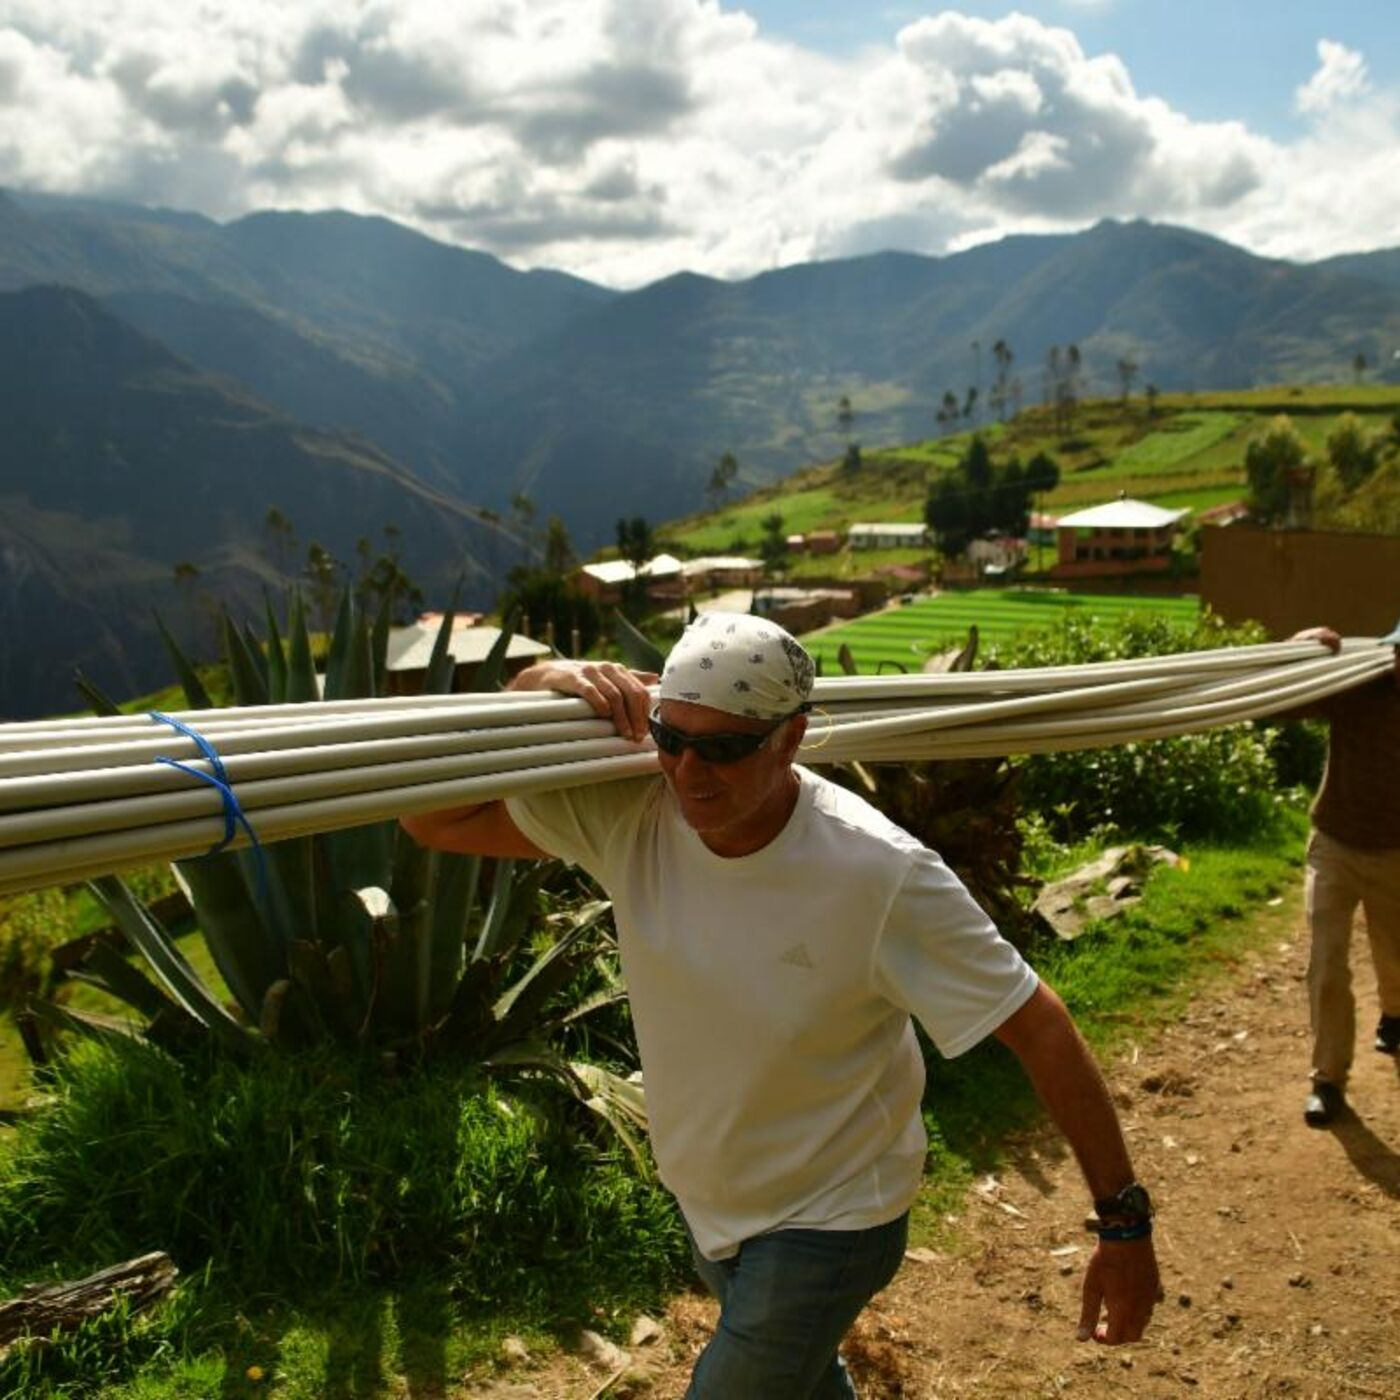 #19 - Shook Construction's Mission to Bolivia